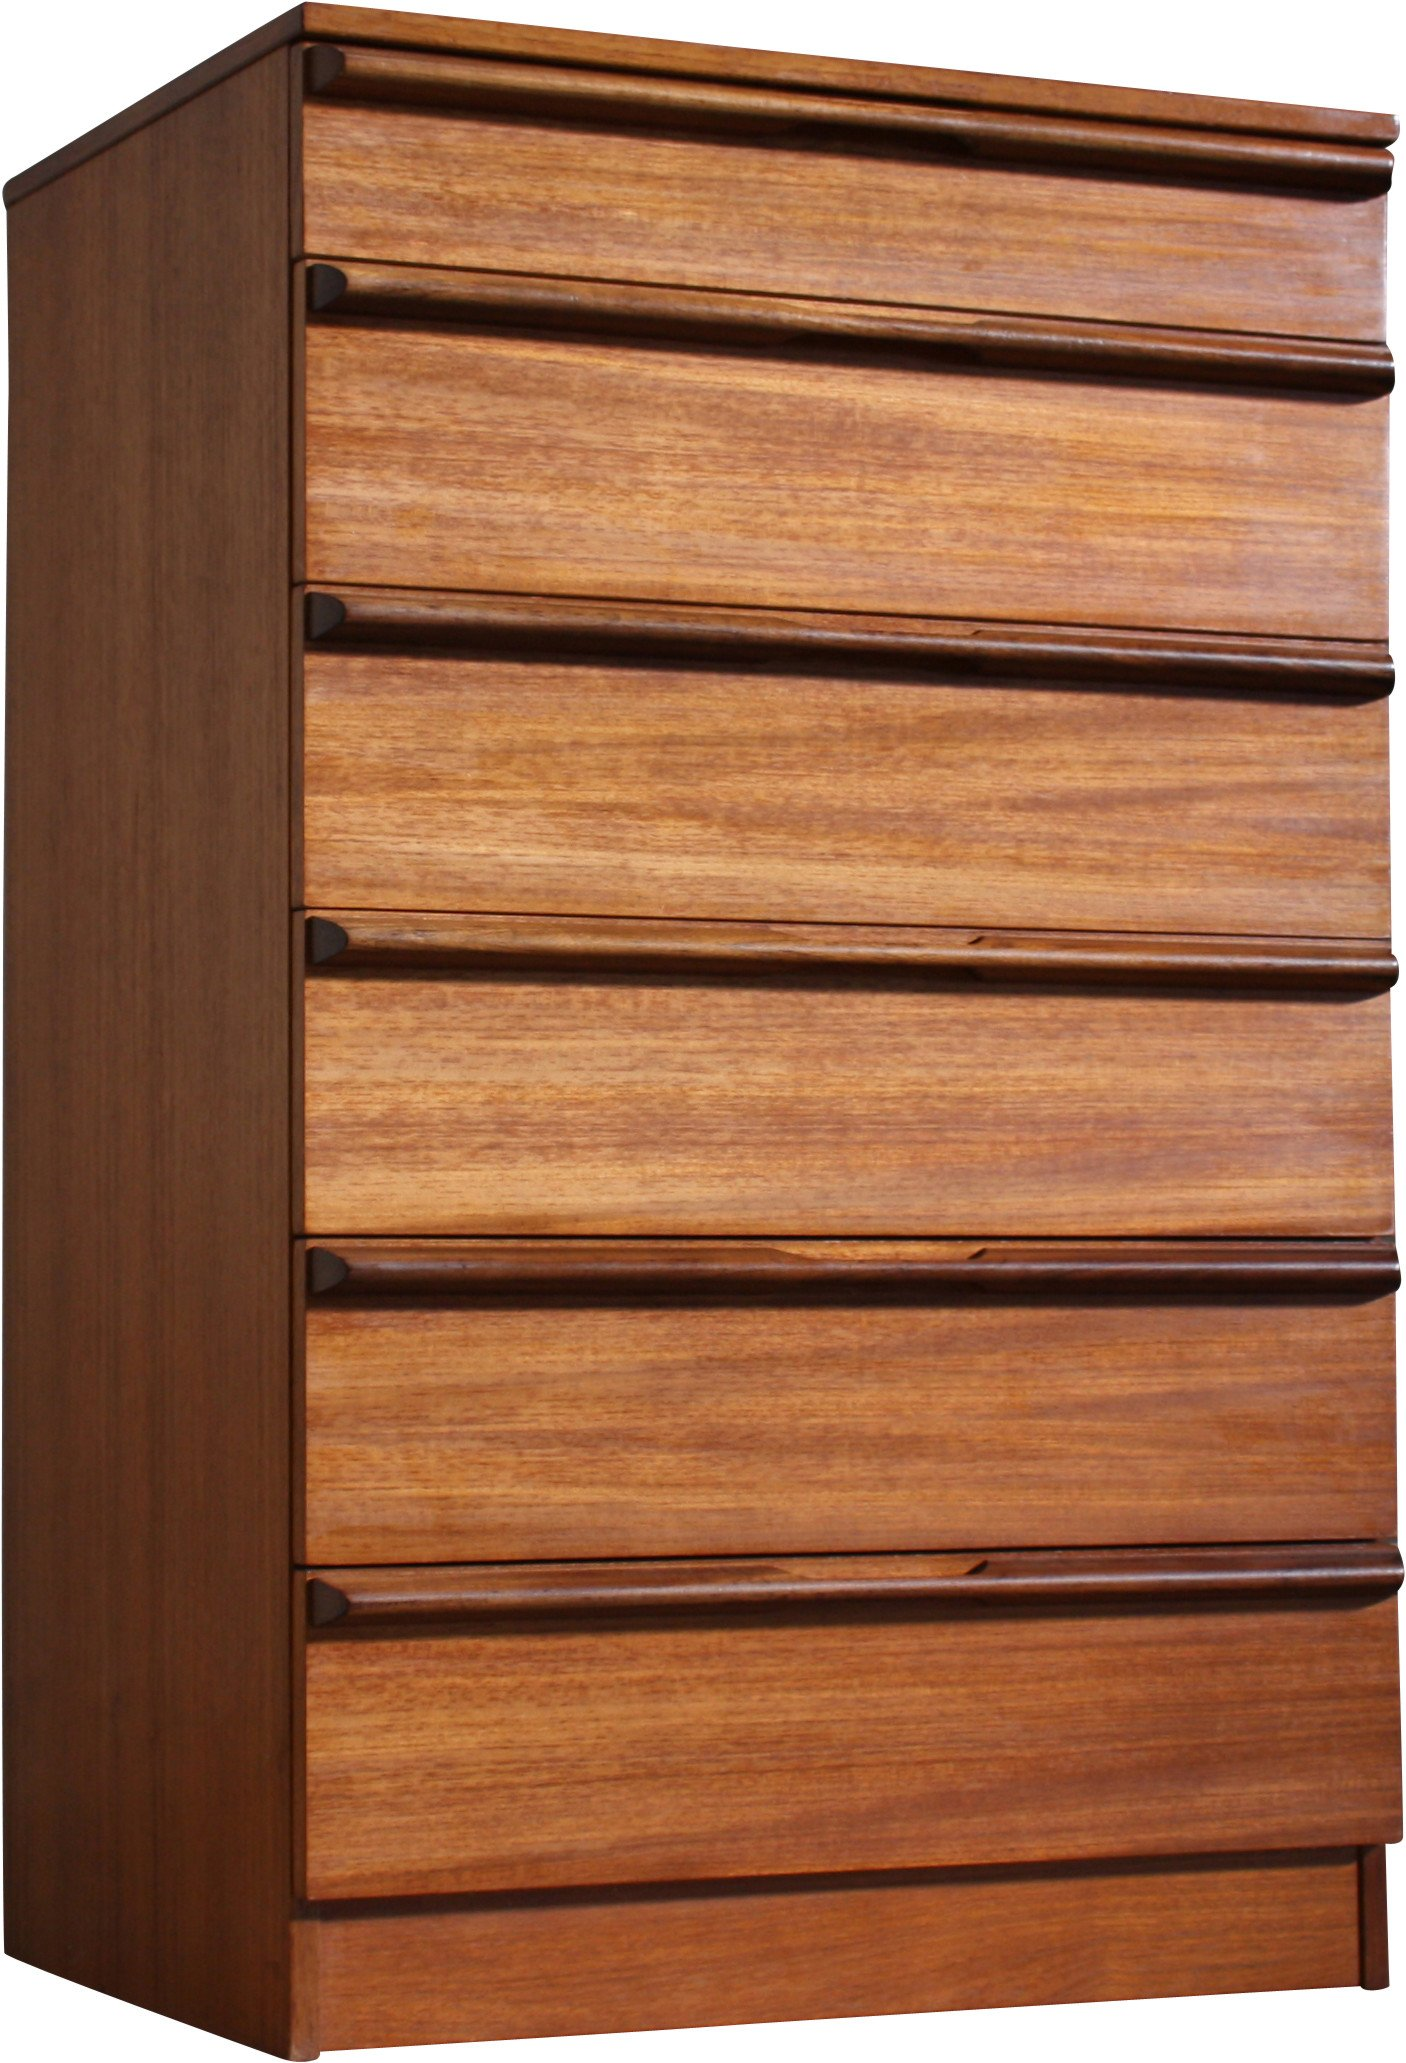 Chest of Drawers, Avalon, United Kingdom, 1960s